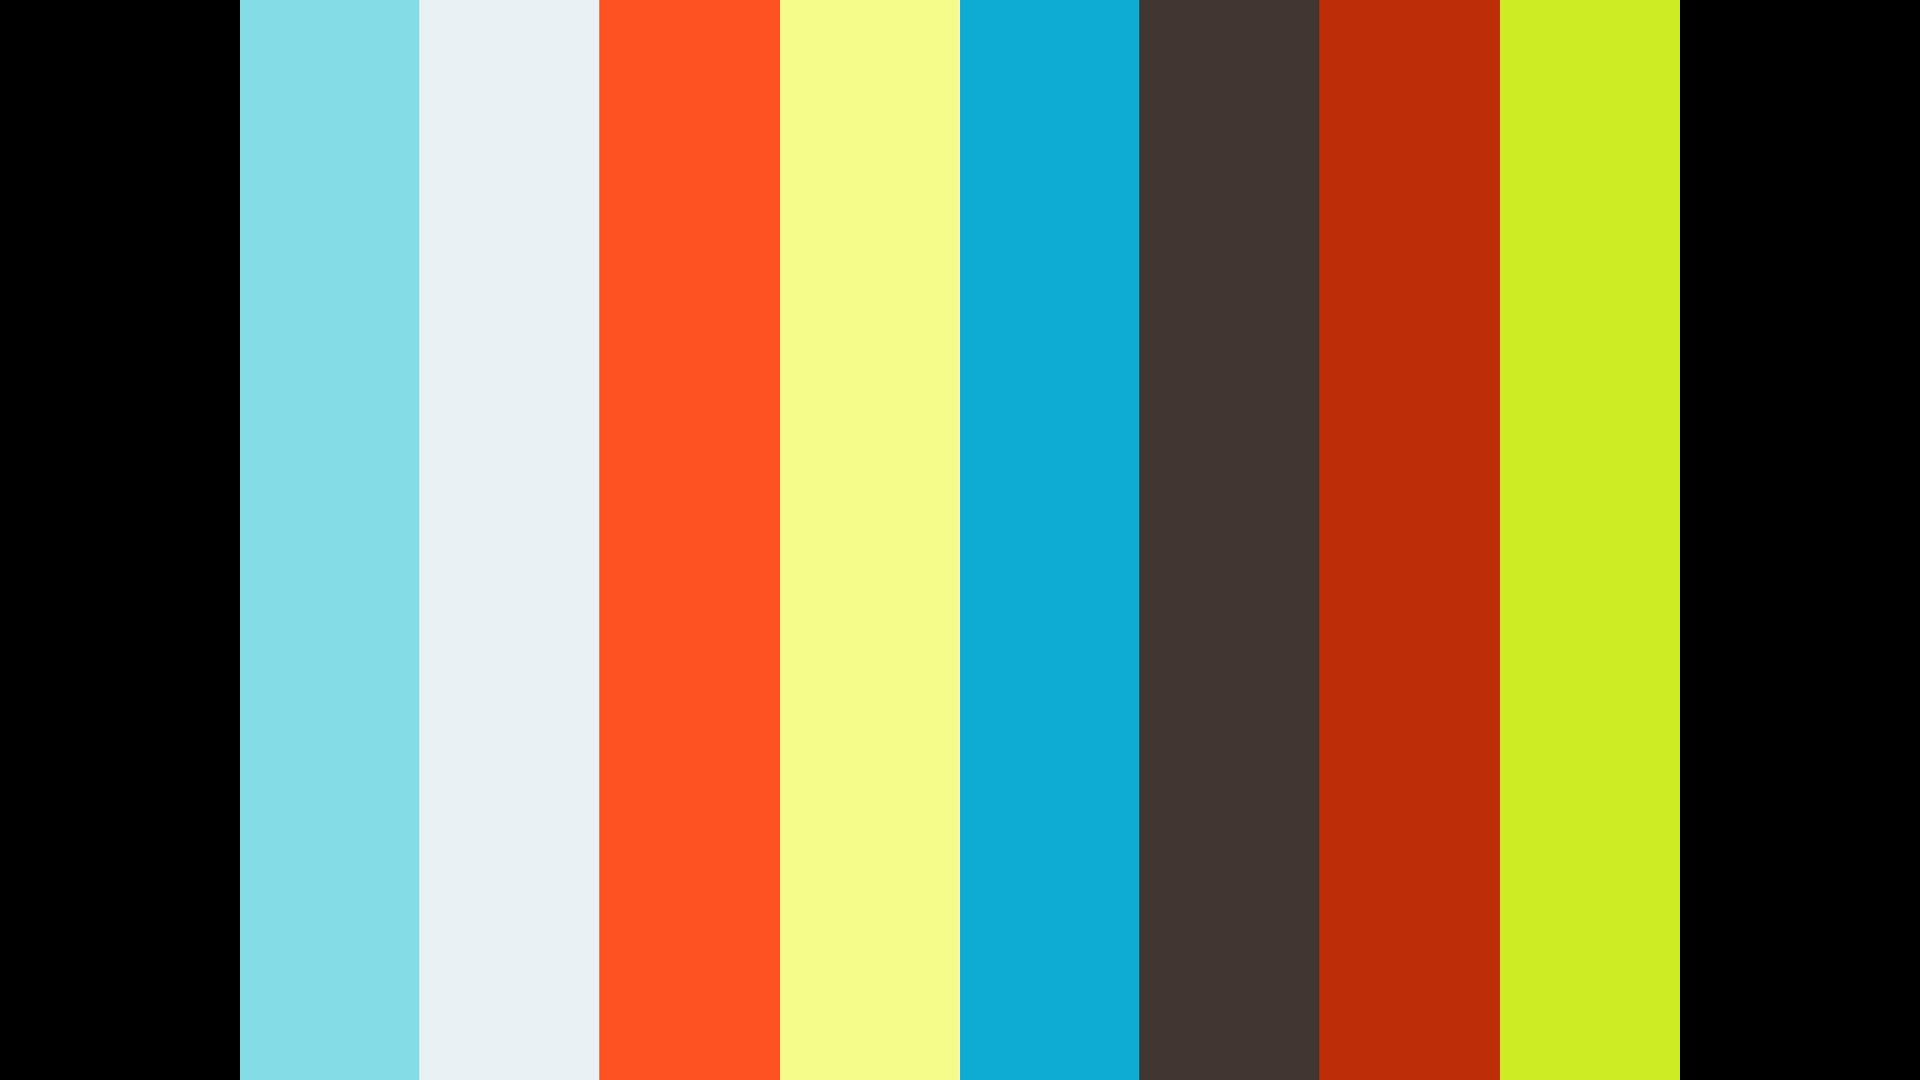 Introduction of Marie-José Mondzain by Charlotte Klonk [7]